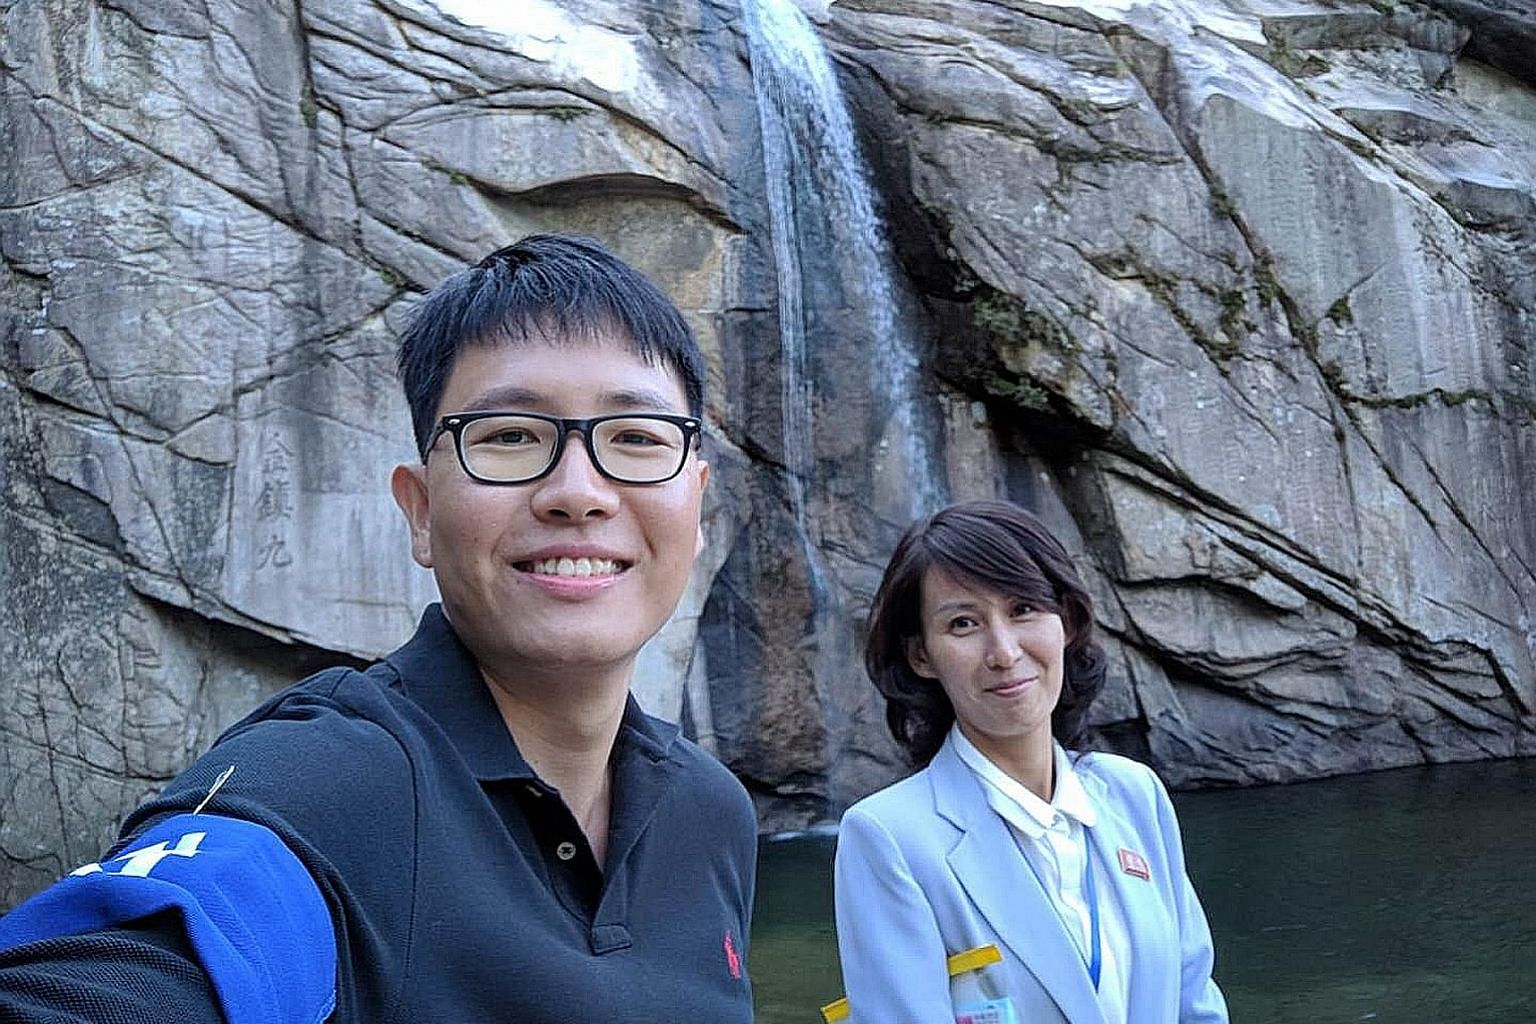 Straits Times correspondent Lim Yan Liang and Mrs Kim Hyon Ju, a card-carrying member of the Workers' Party of Korea, at the Pakyon Waterfall, regarded as one of the most famous waterfalls on the Korean peninsula.